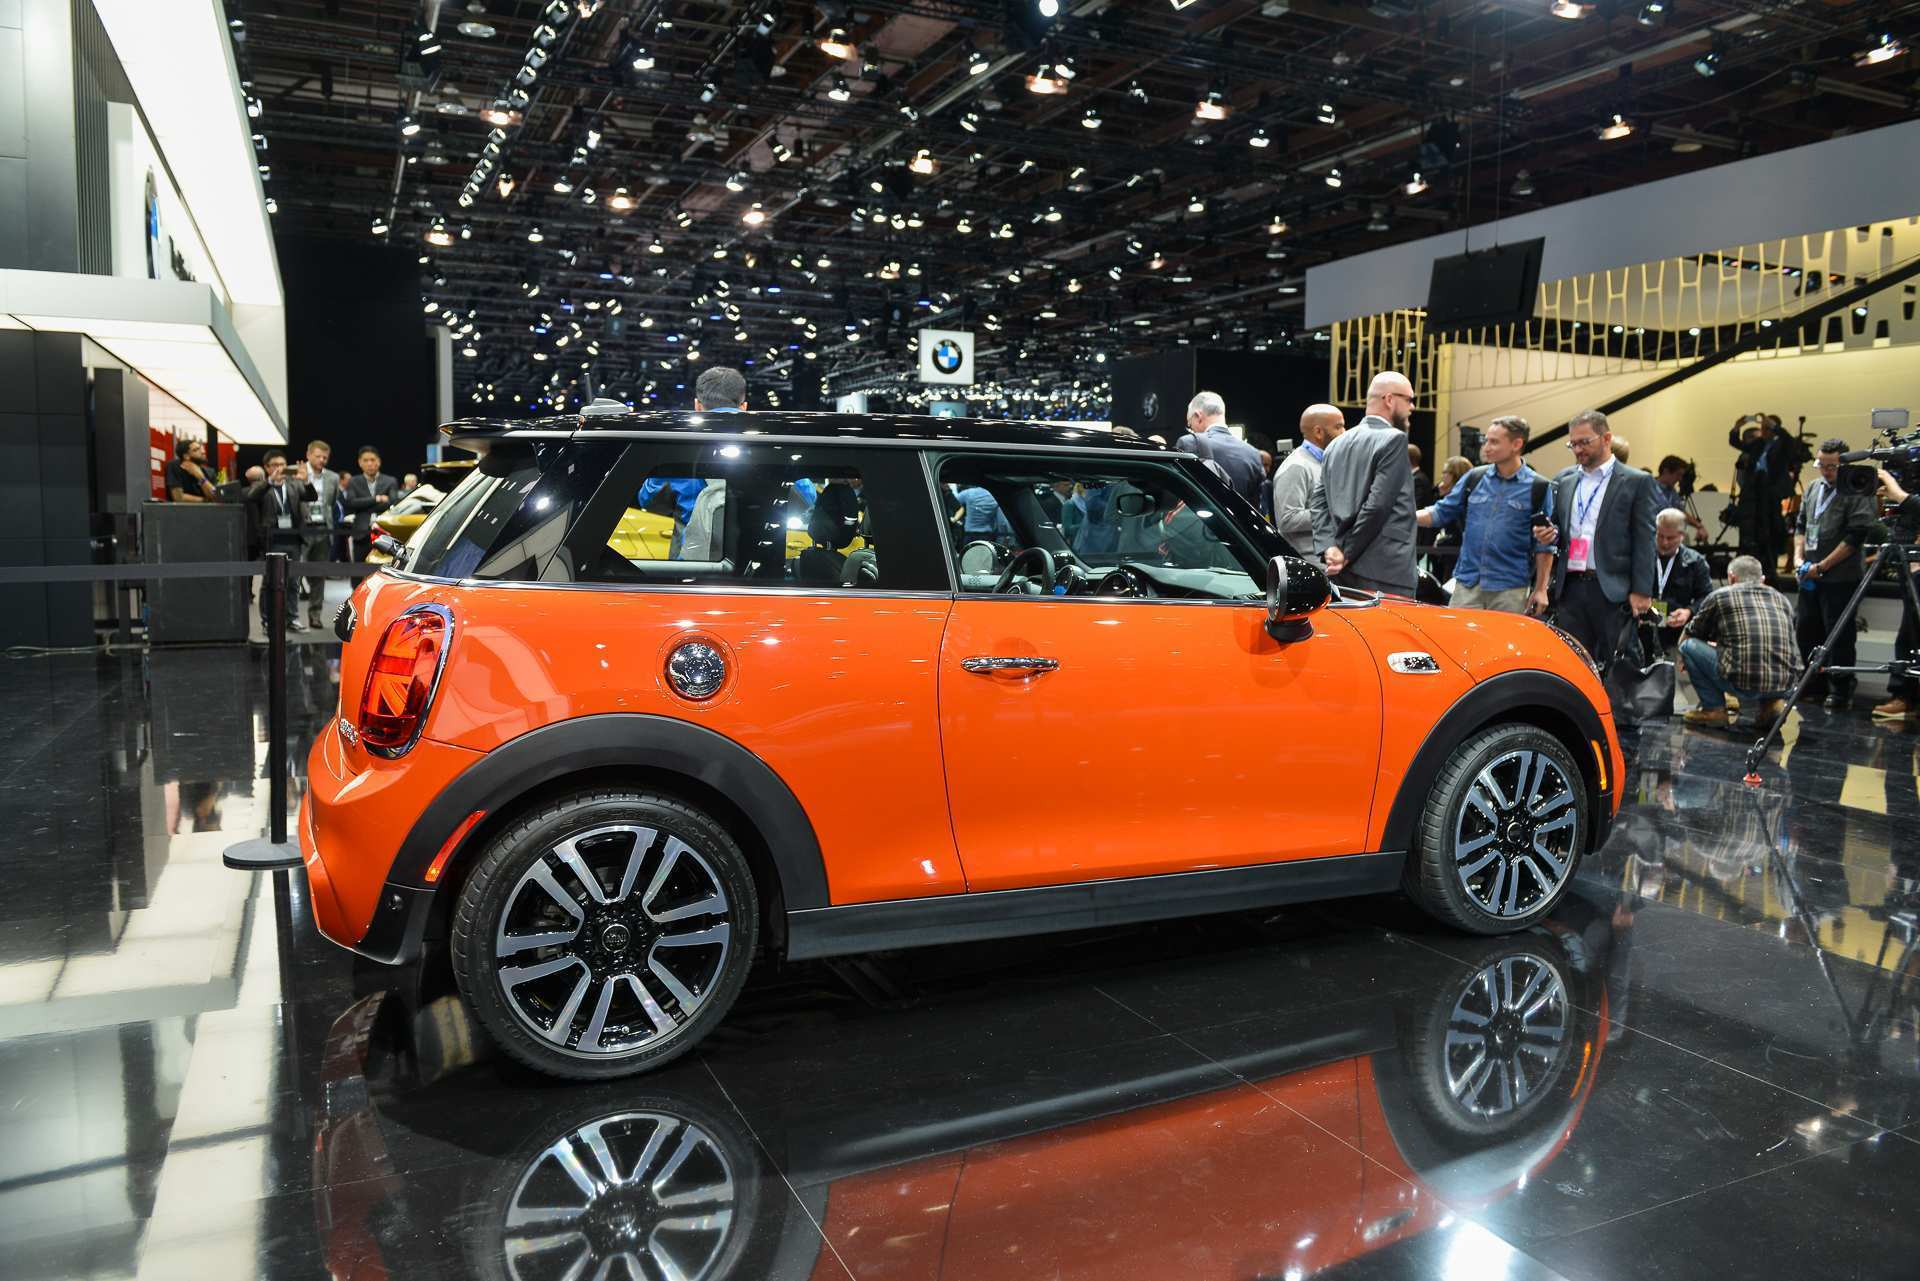 98 New 2019 Mini Availability Pictures by 2019 Mini Availability